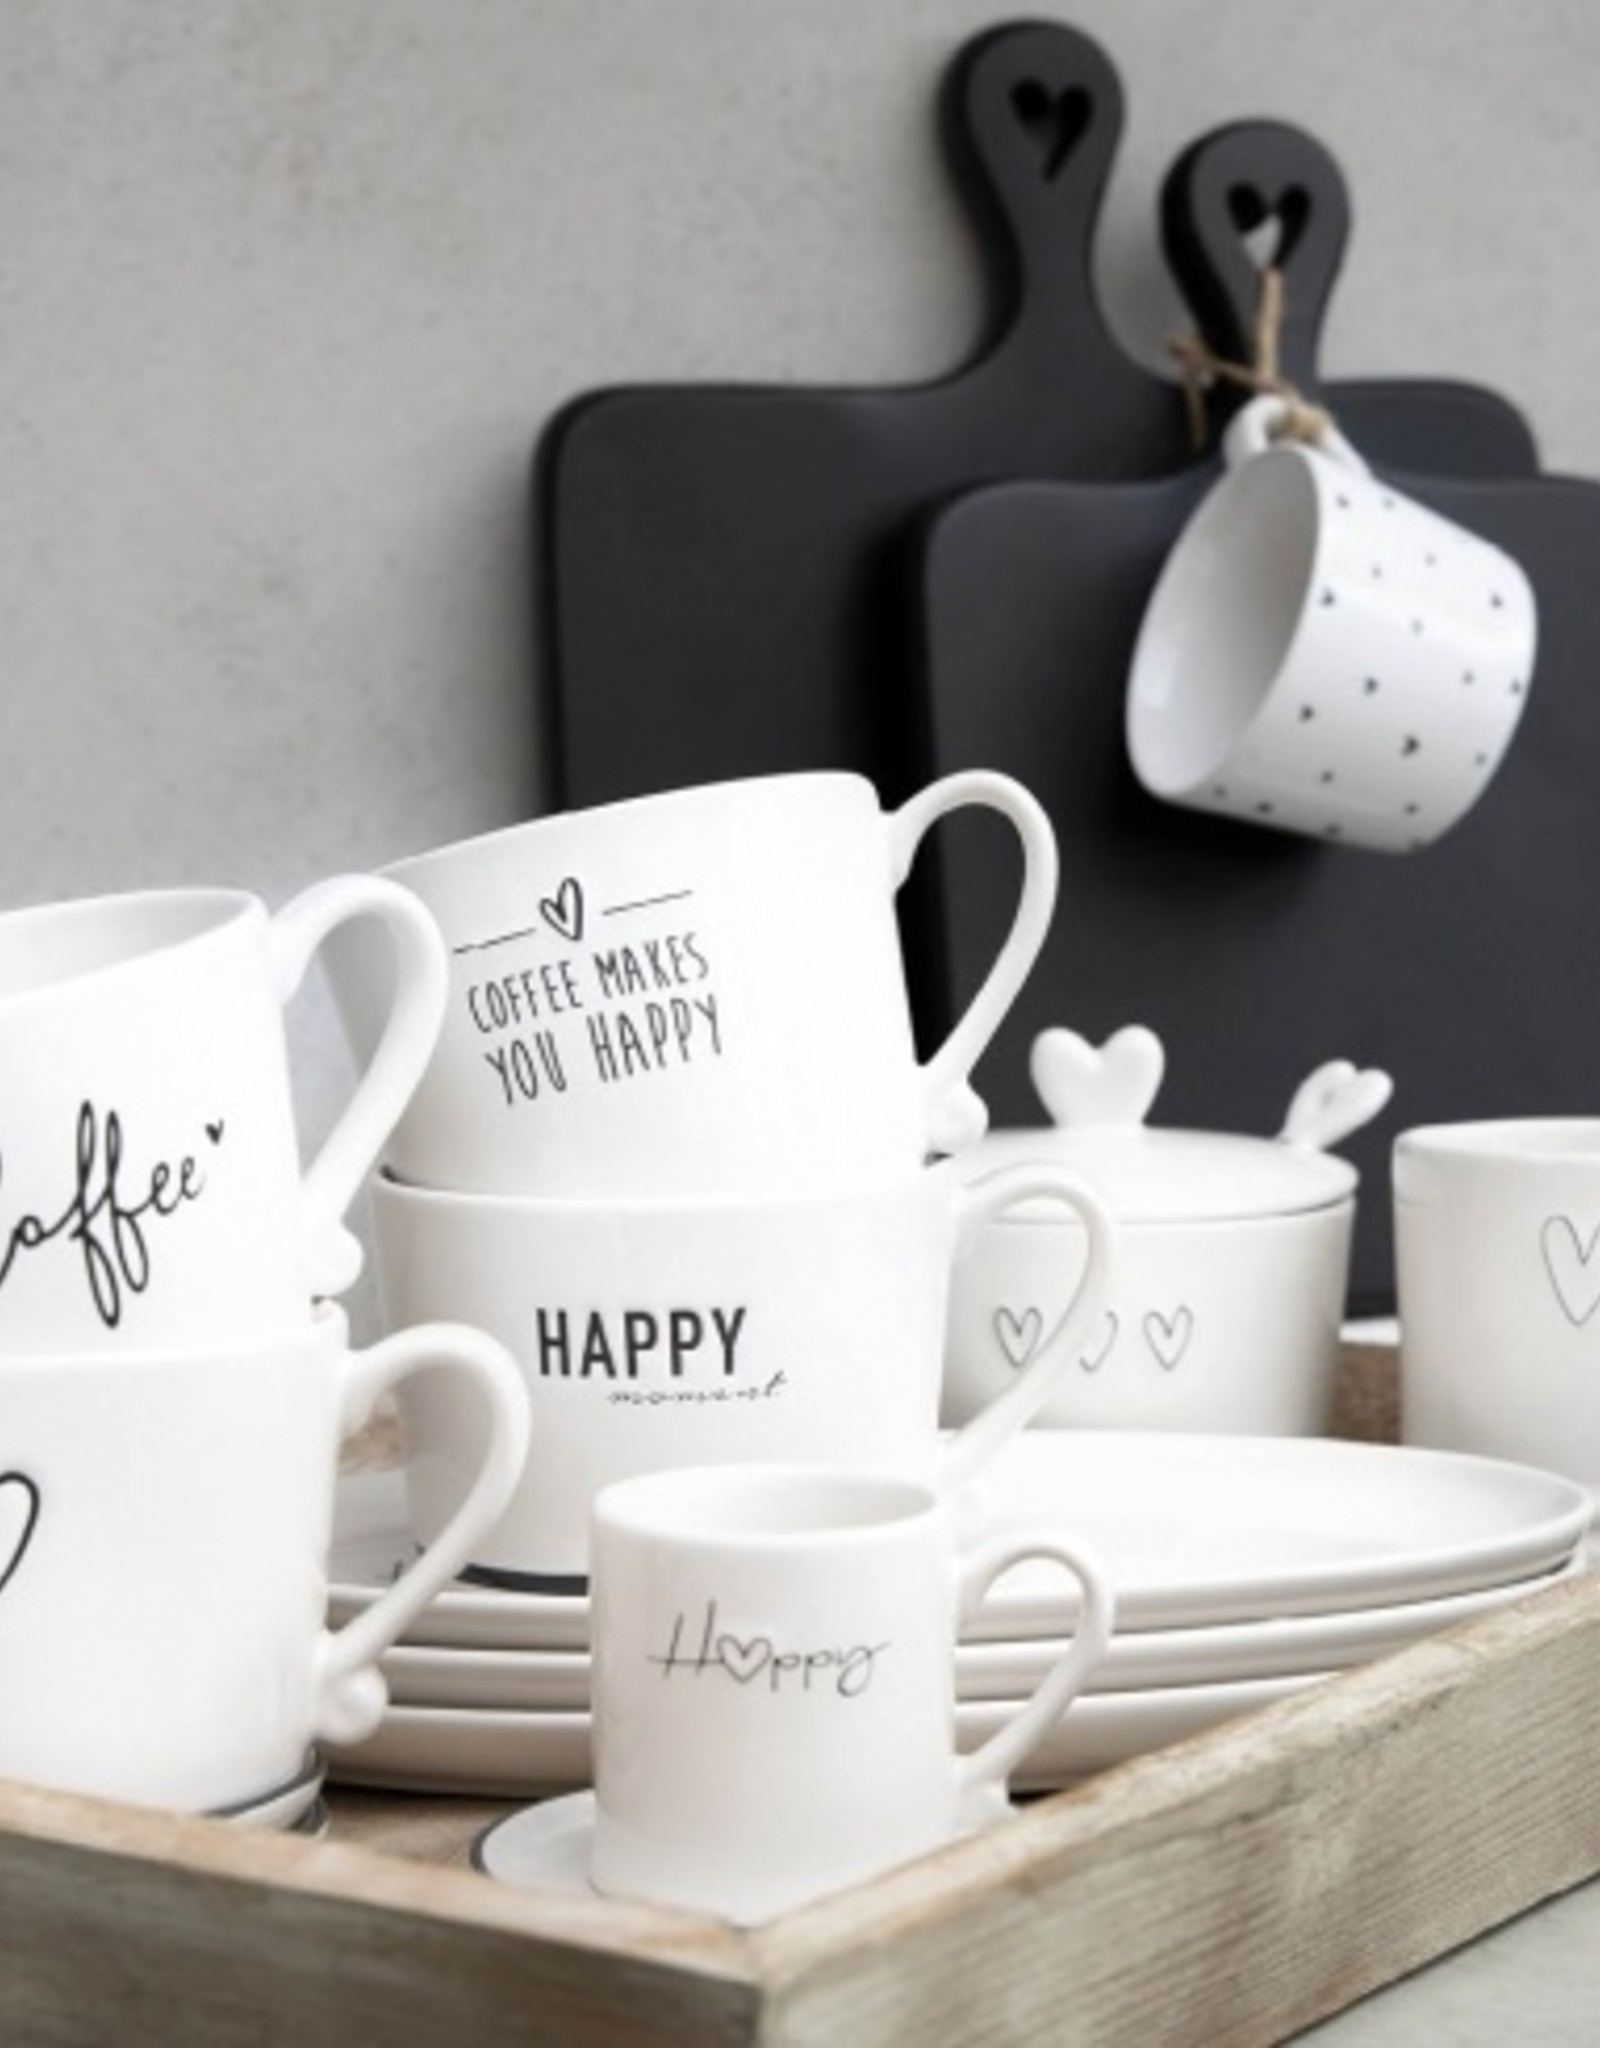 Bastion Collections Cup White   Happy   Bastion Collections